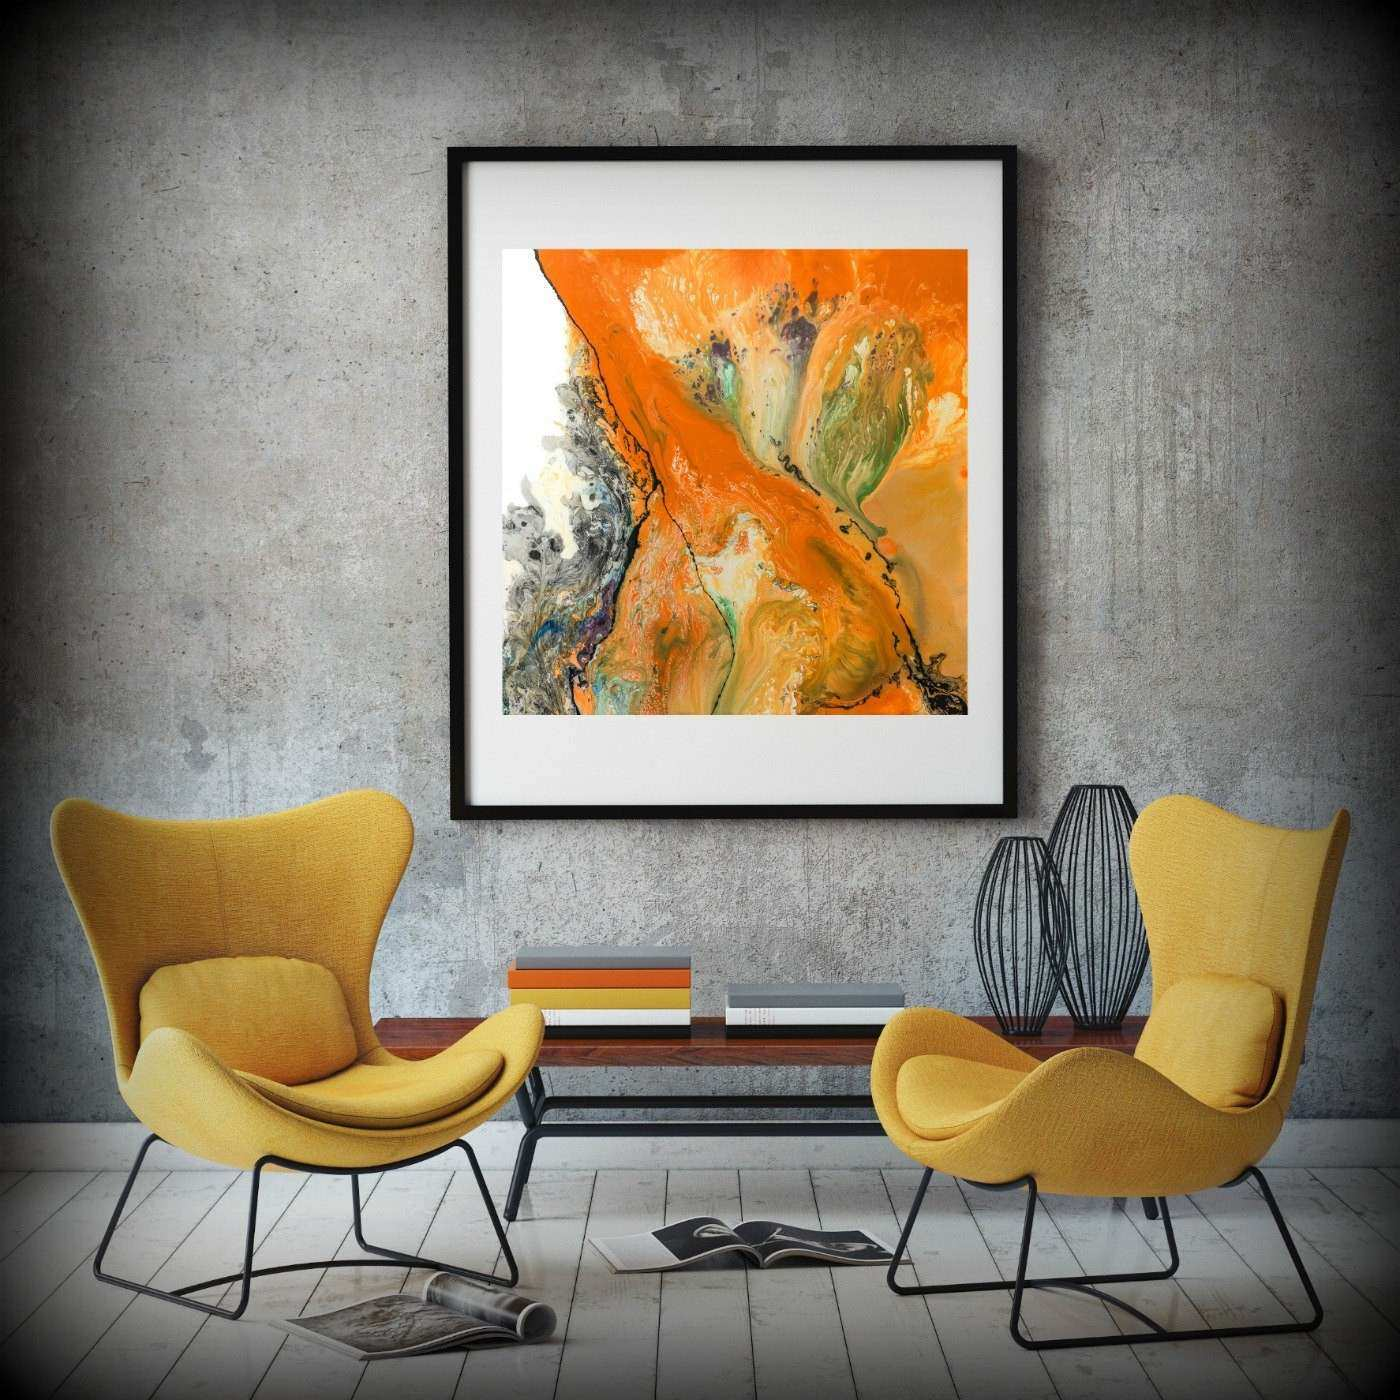 LIVING ROOM DECOR Square Wall Decor Orange Wall Art Dining